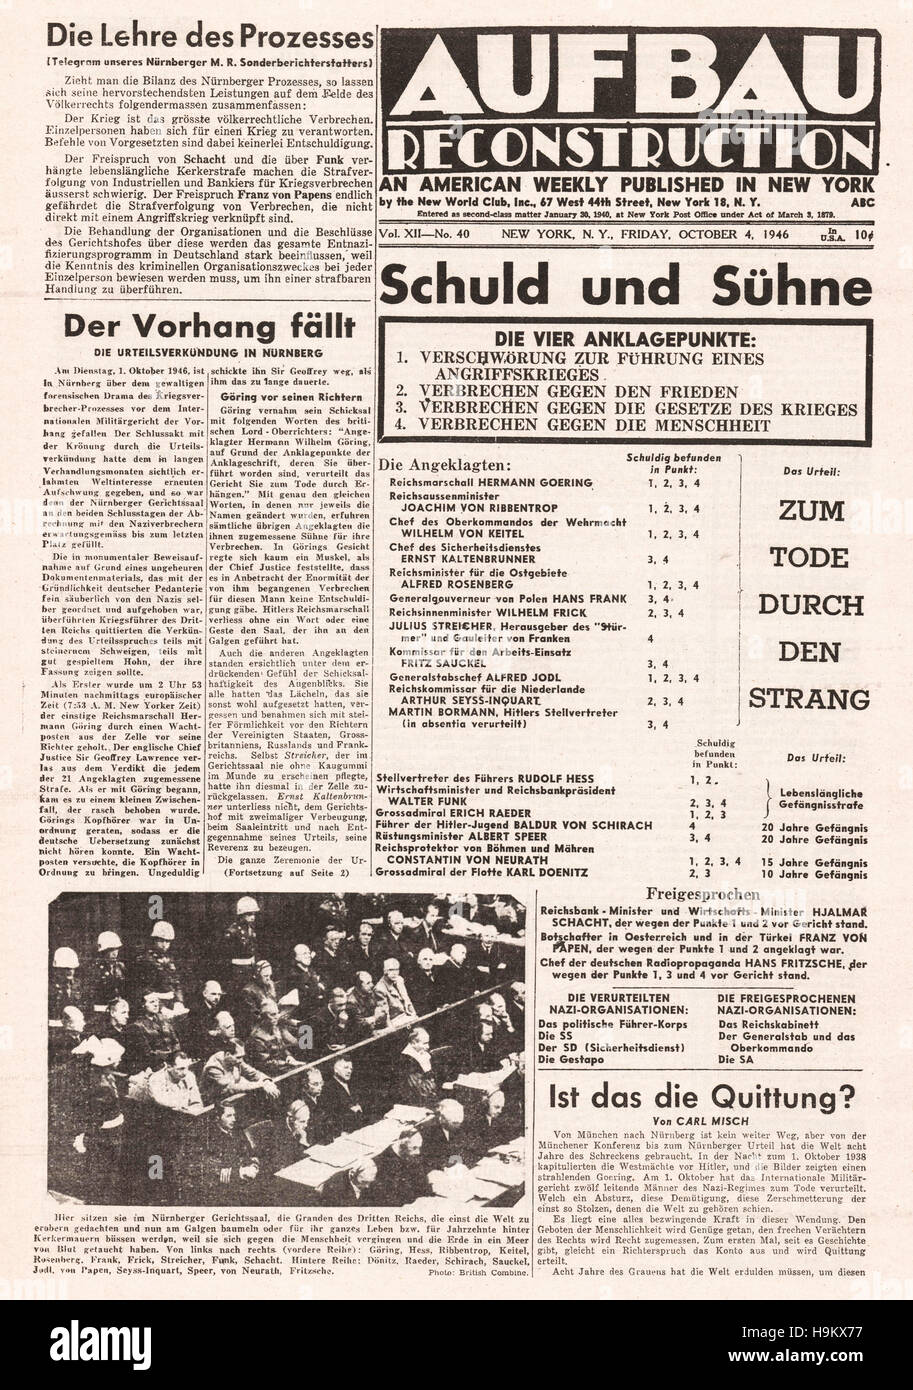 1946 Aufbau (USA) front page Nazi leaders sentenced to death Stock Photo